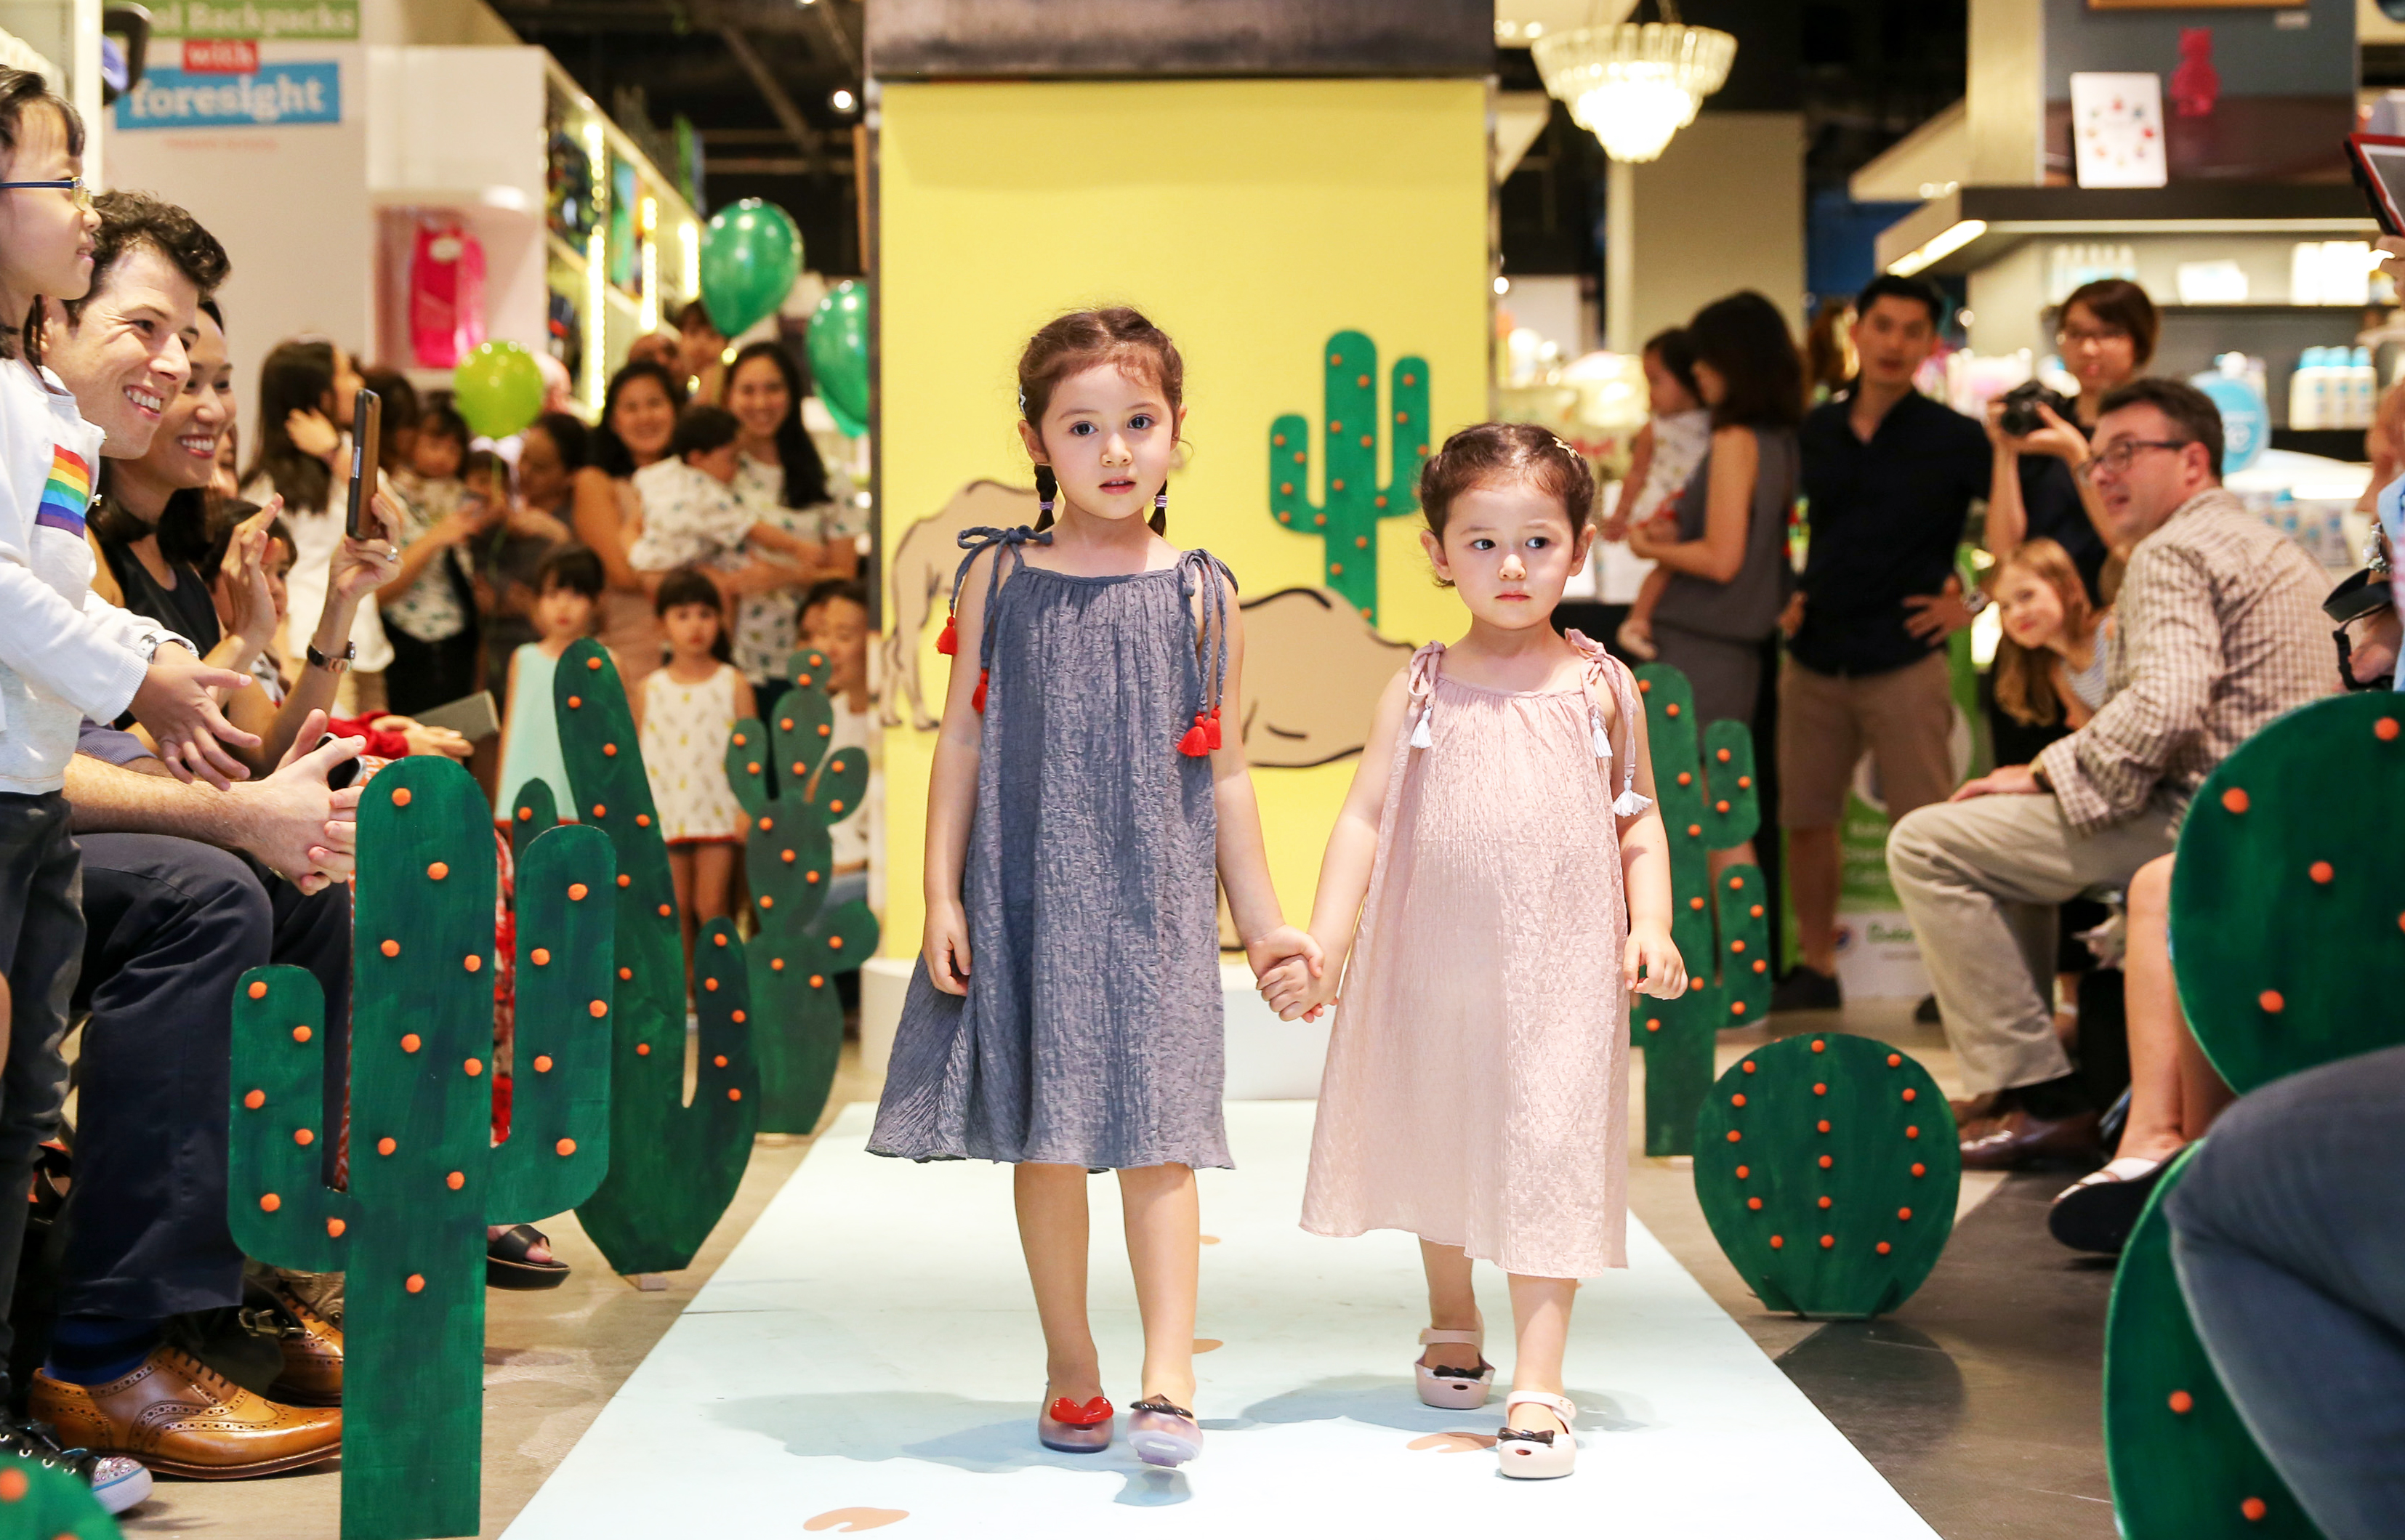 Le Petit Society - Summer Escape Runway Show